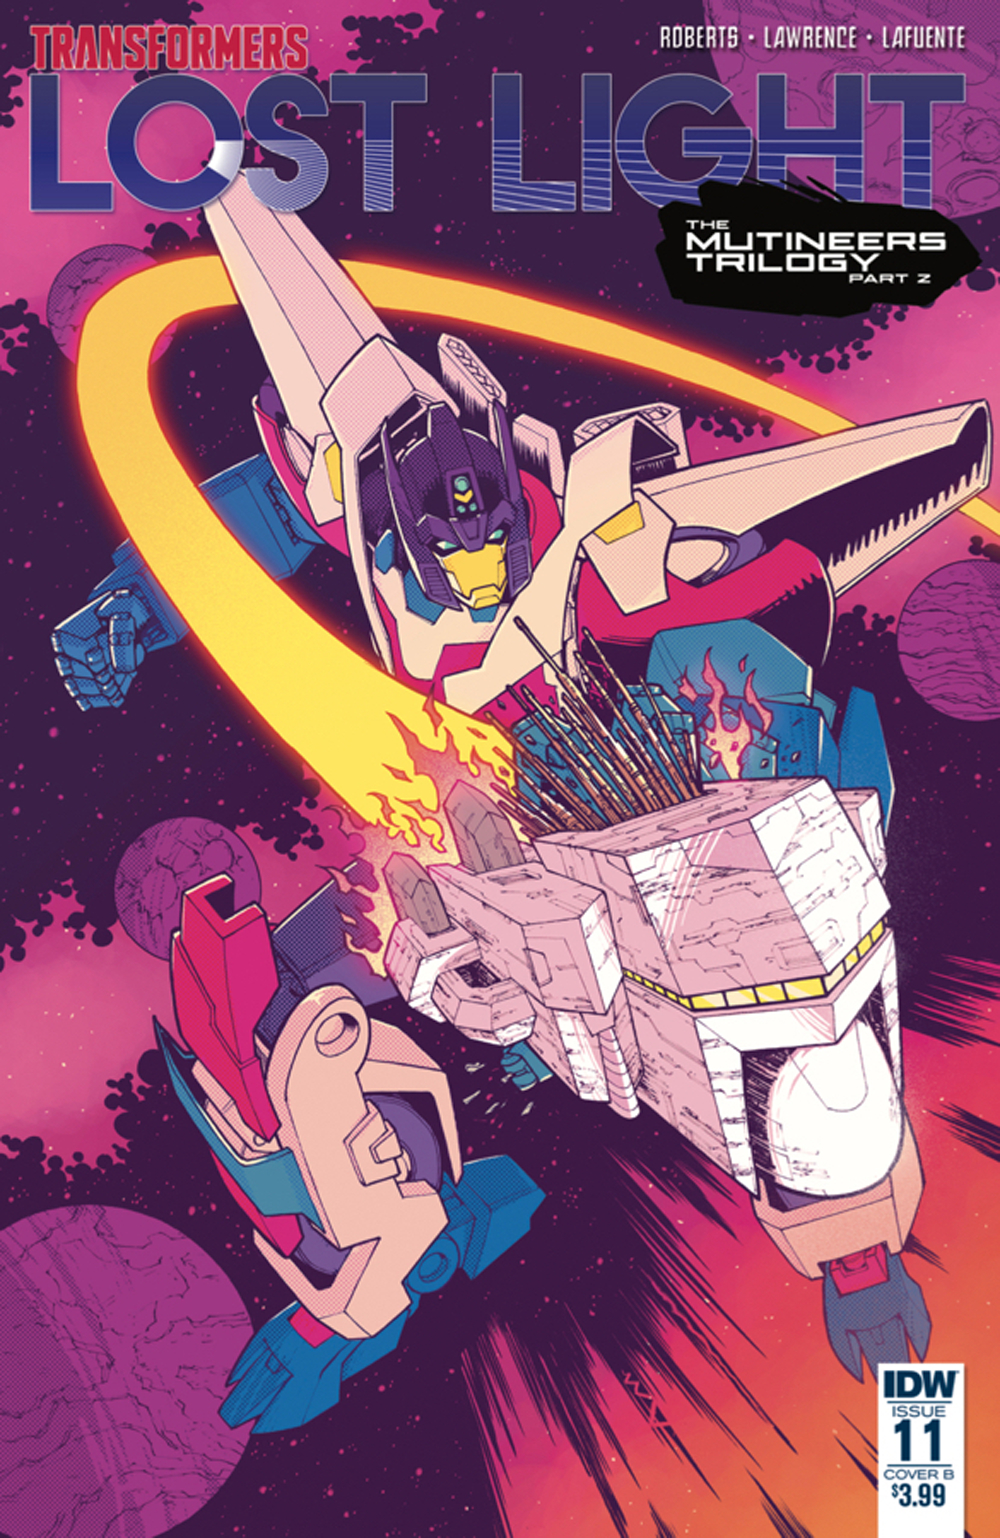 TRANSFORMERS LOST LIGHT #11 CVR B ROCHE